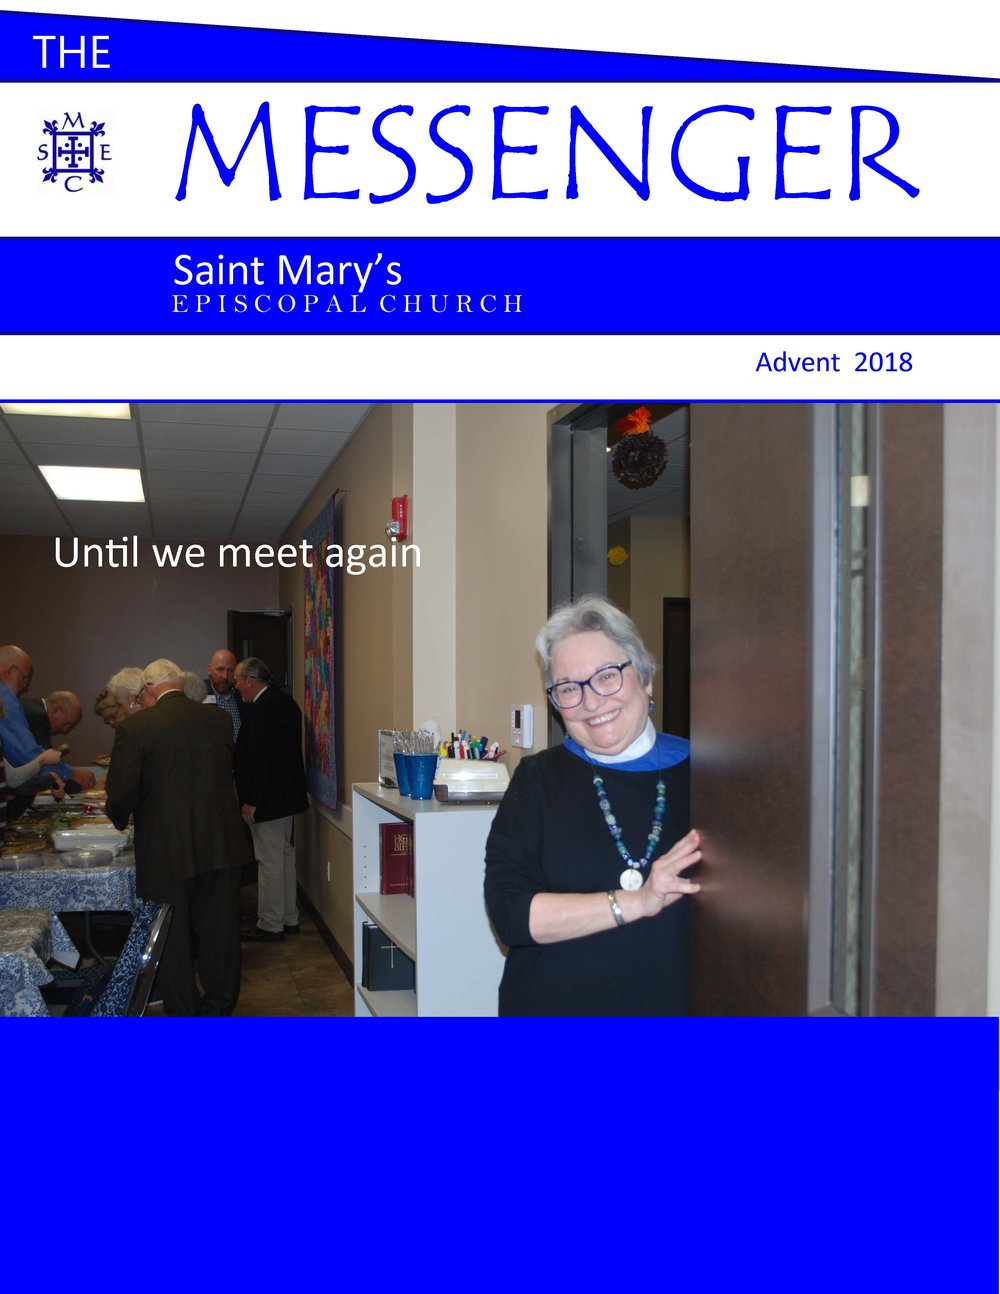 Messenger Advent 2018 Cover.jpg